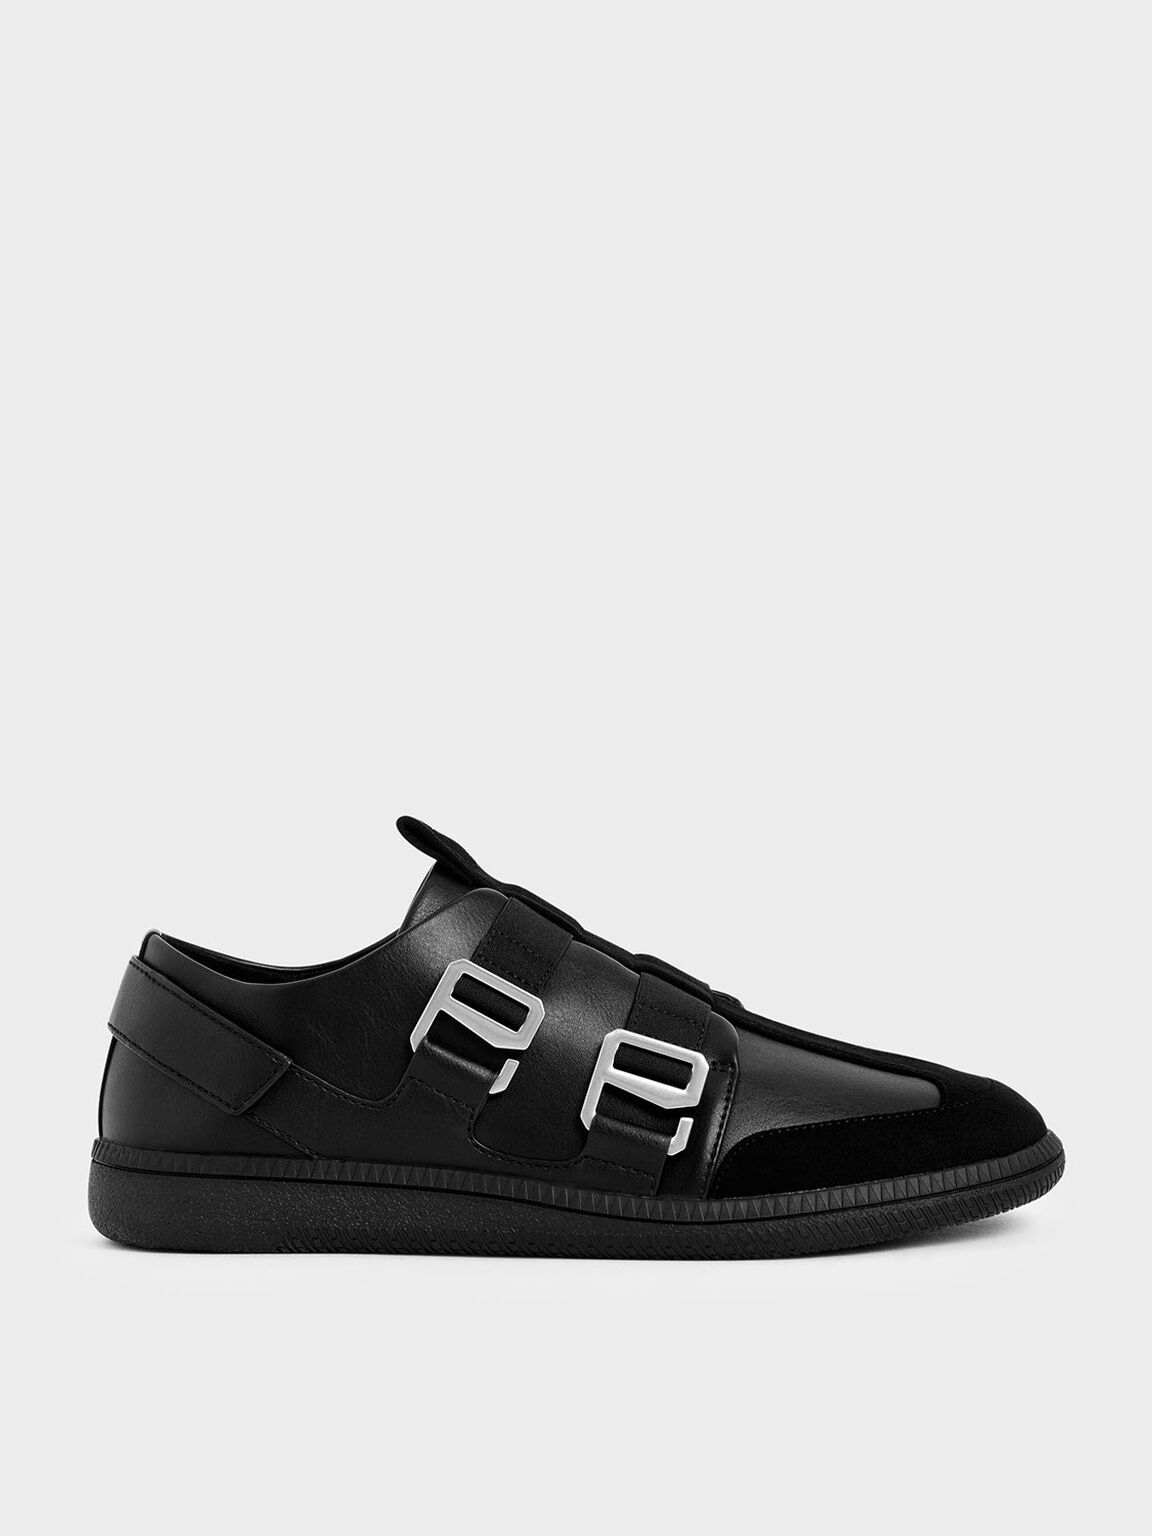 Buckle Slip-On Sneakers, Black, hi-res